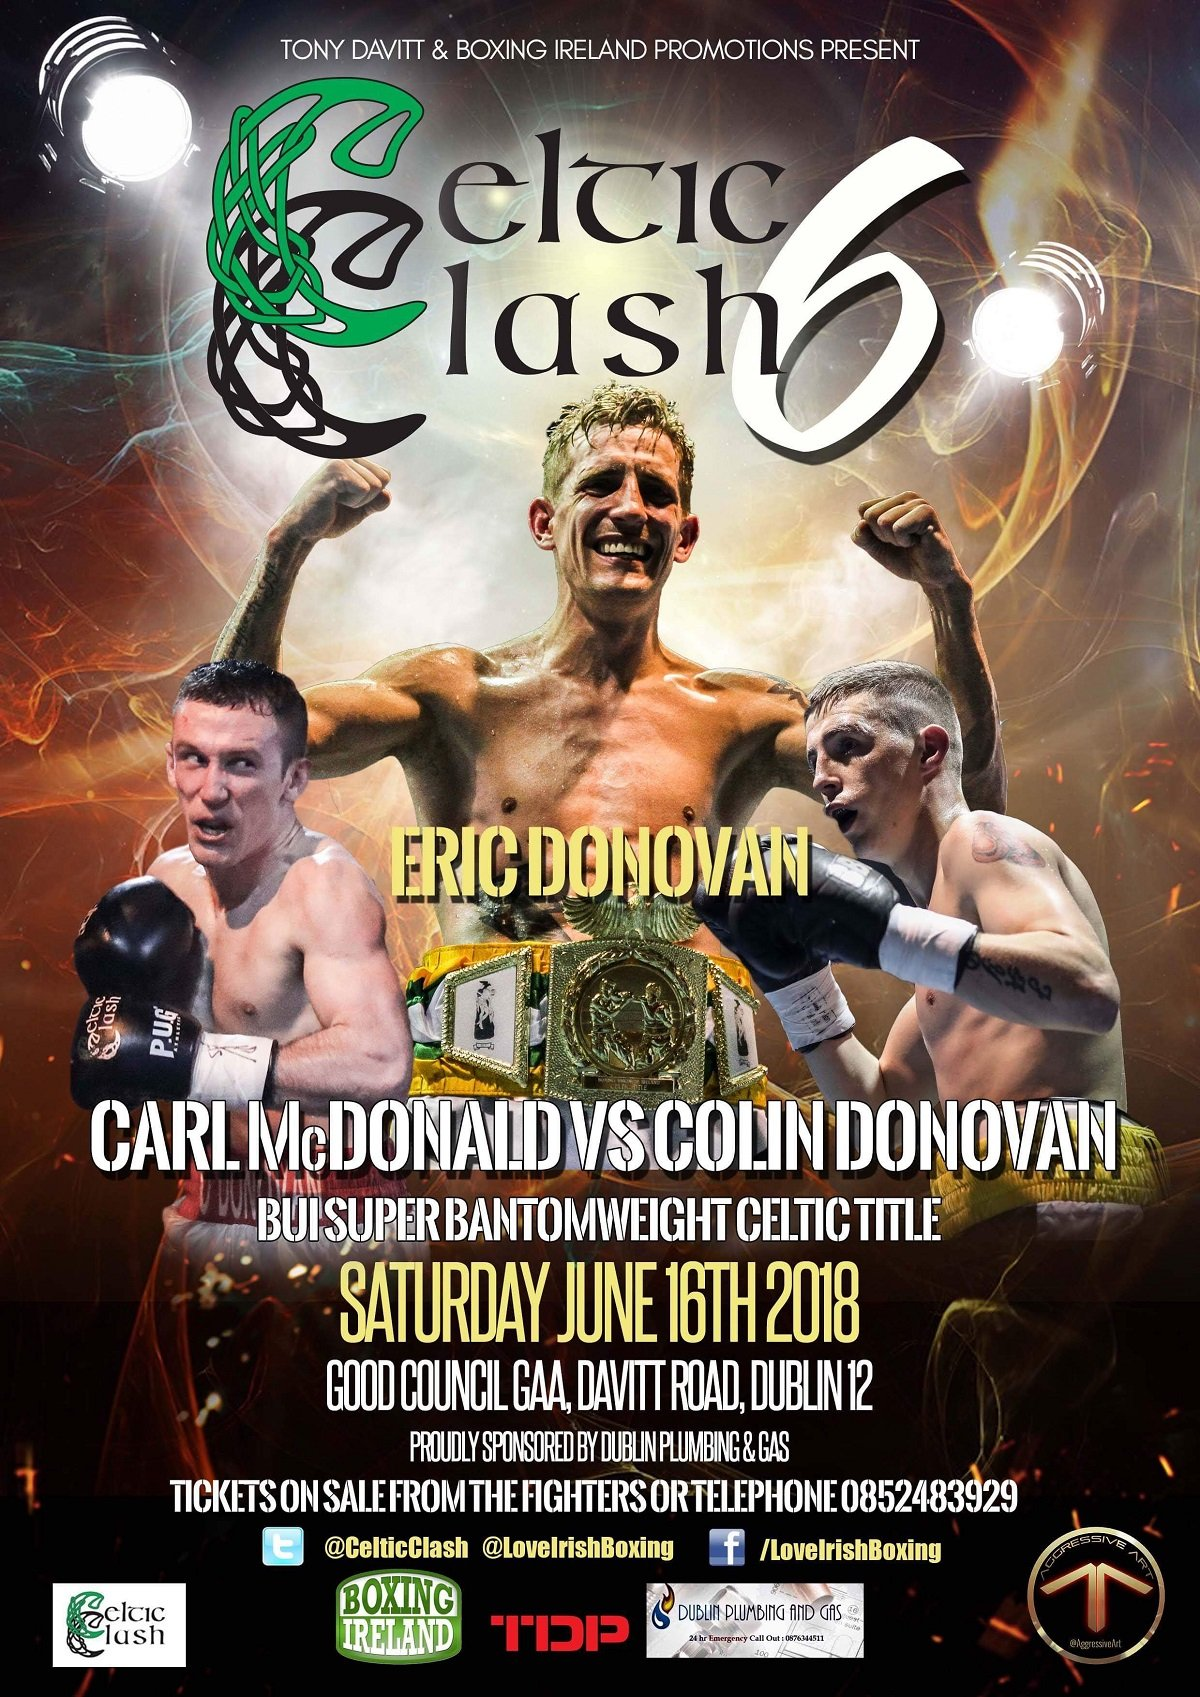 Stephen McAfee vs. Colin O'Donovan on June 16